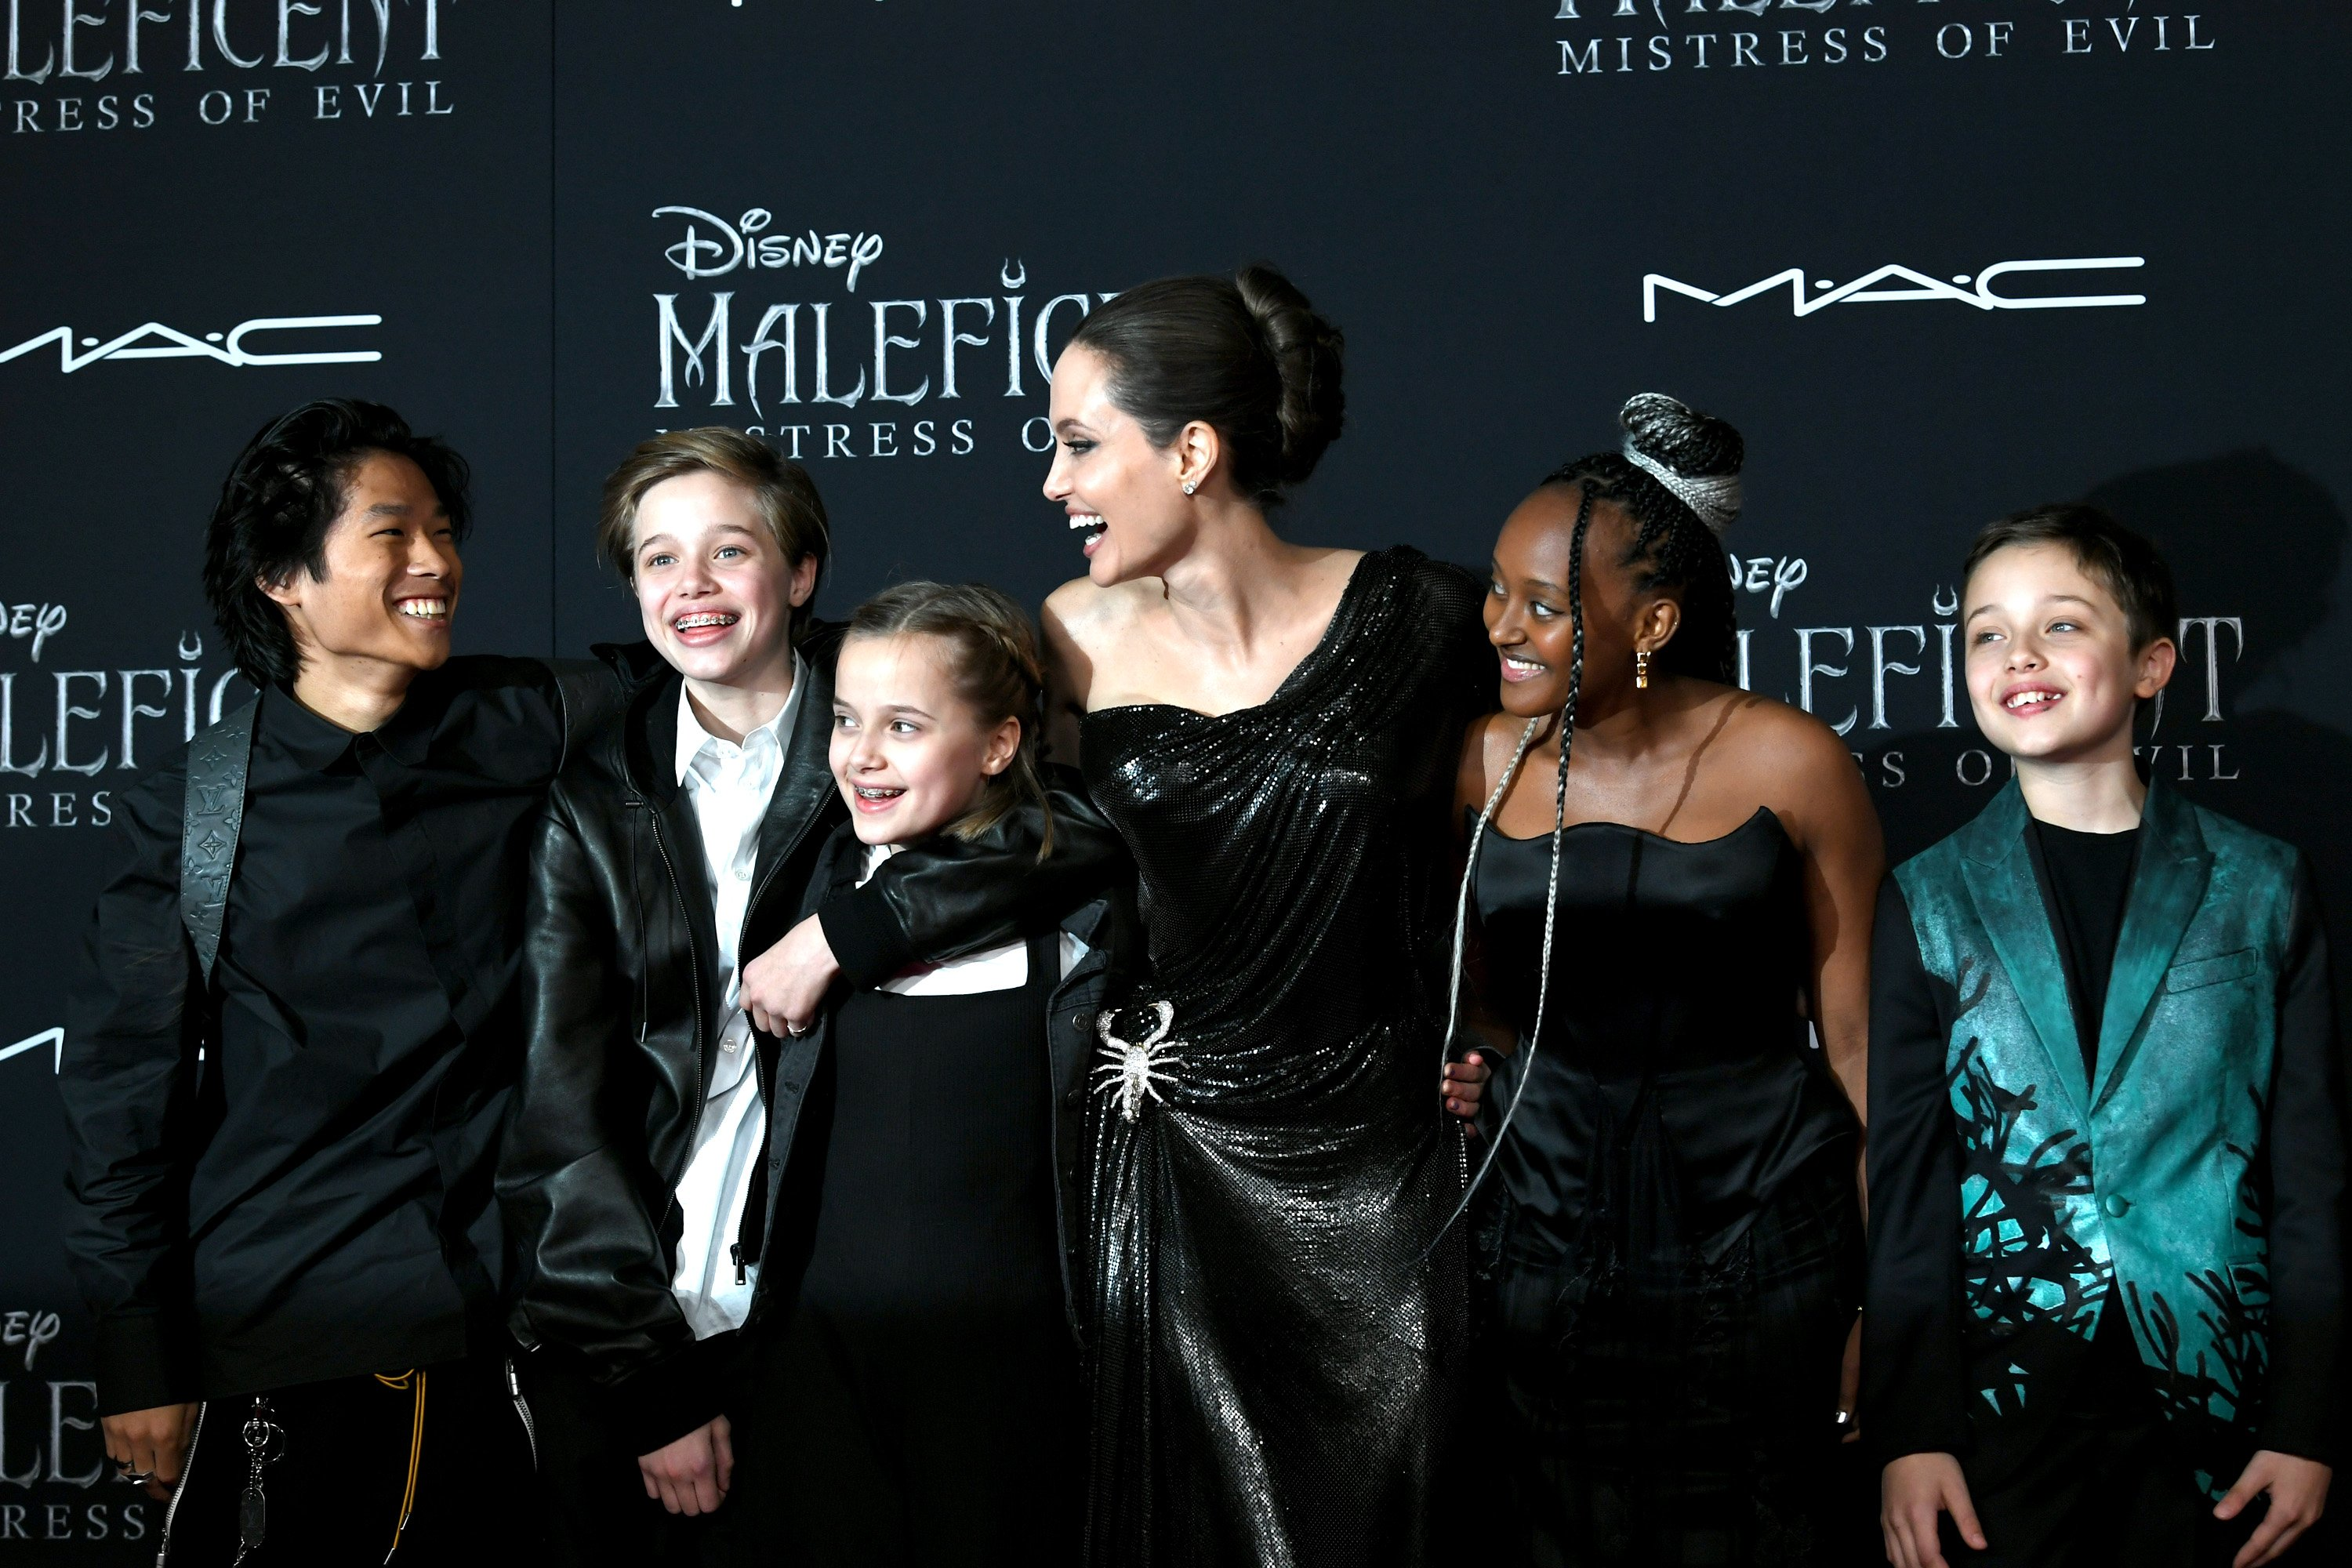 """Angelina Jolie and her kids attends the premiere of """"Maleficent: Mistress of Evil"""" in Los Angeles, California on September 30, 2019 